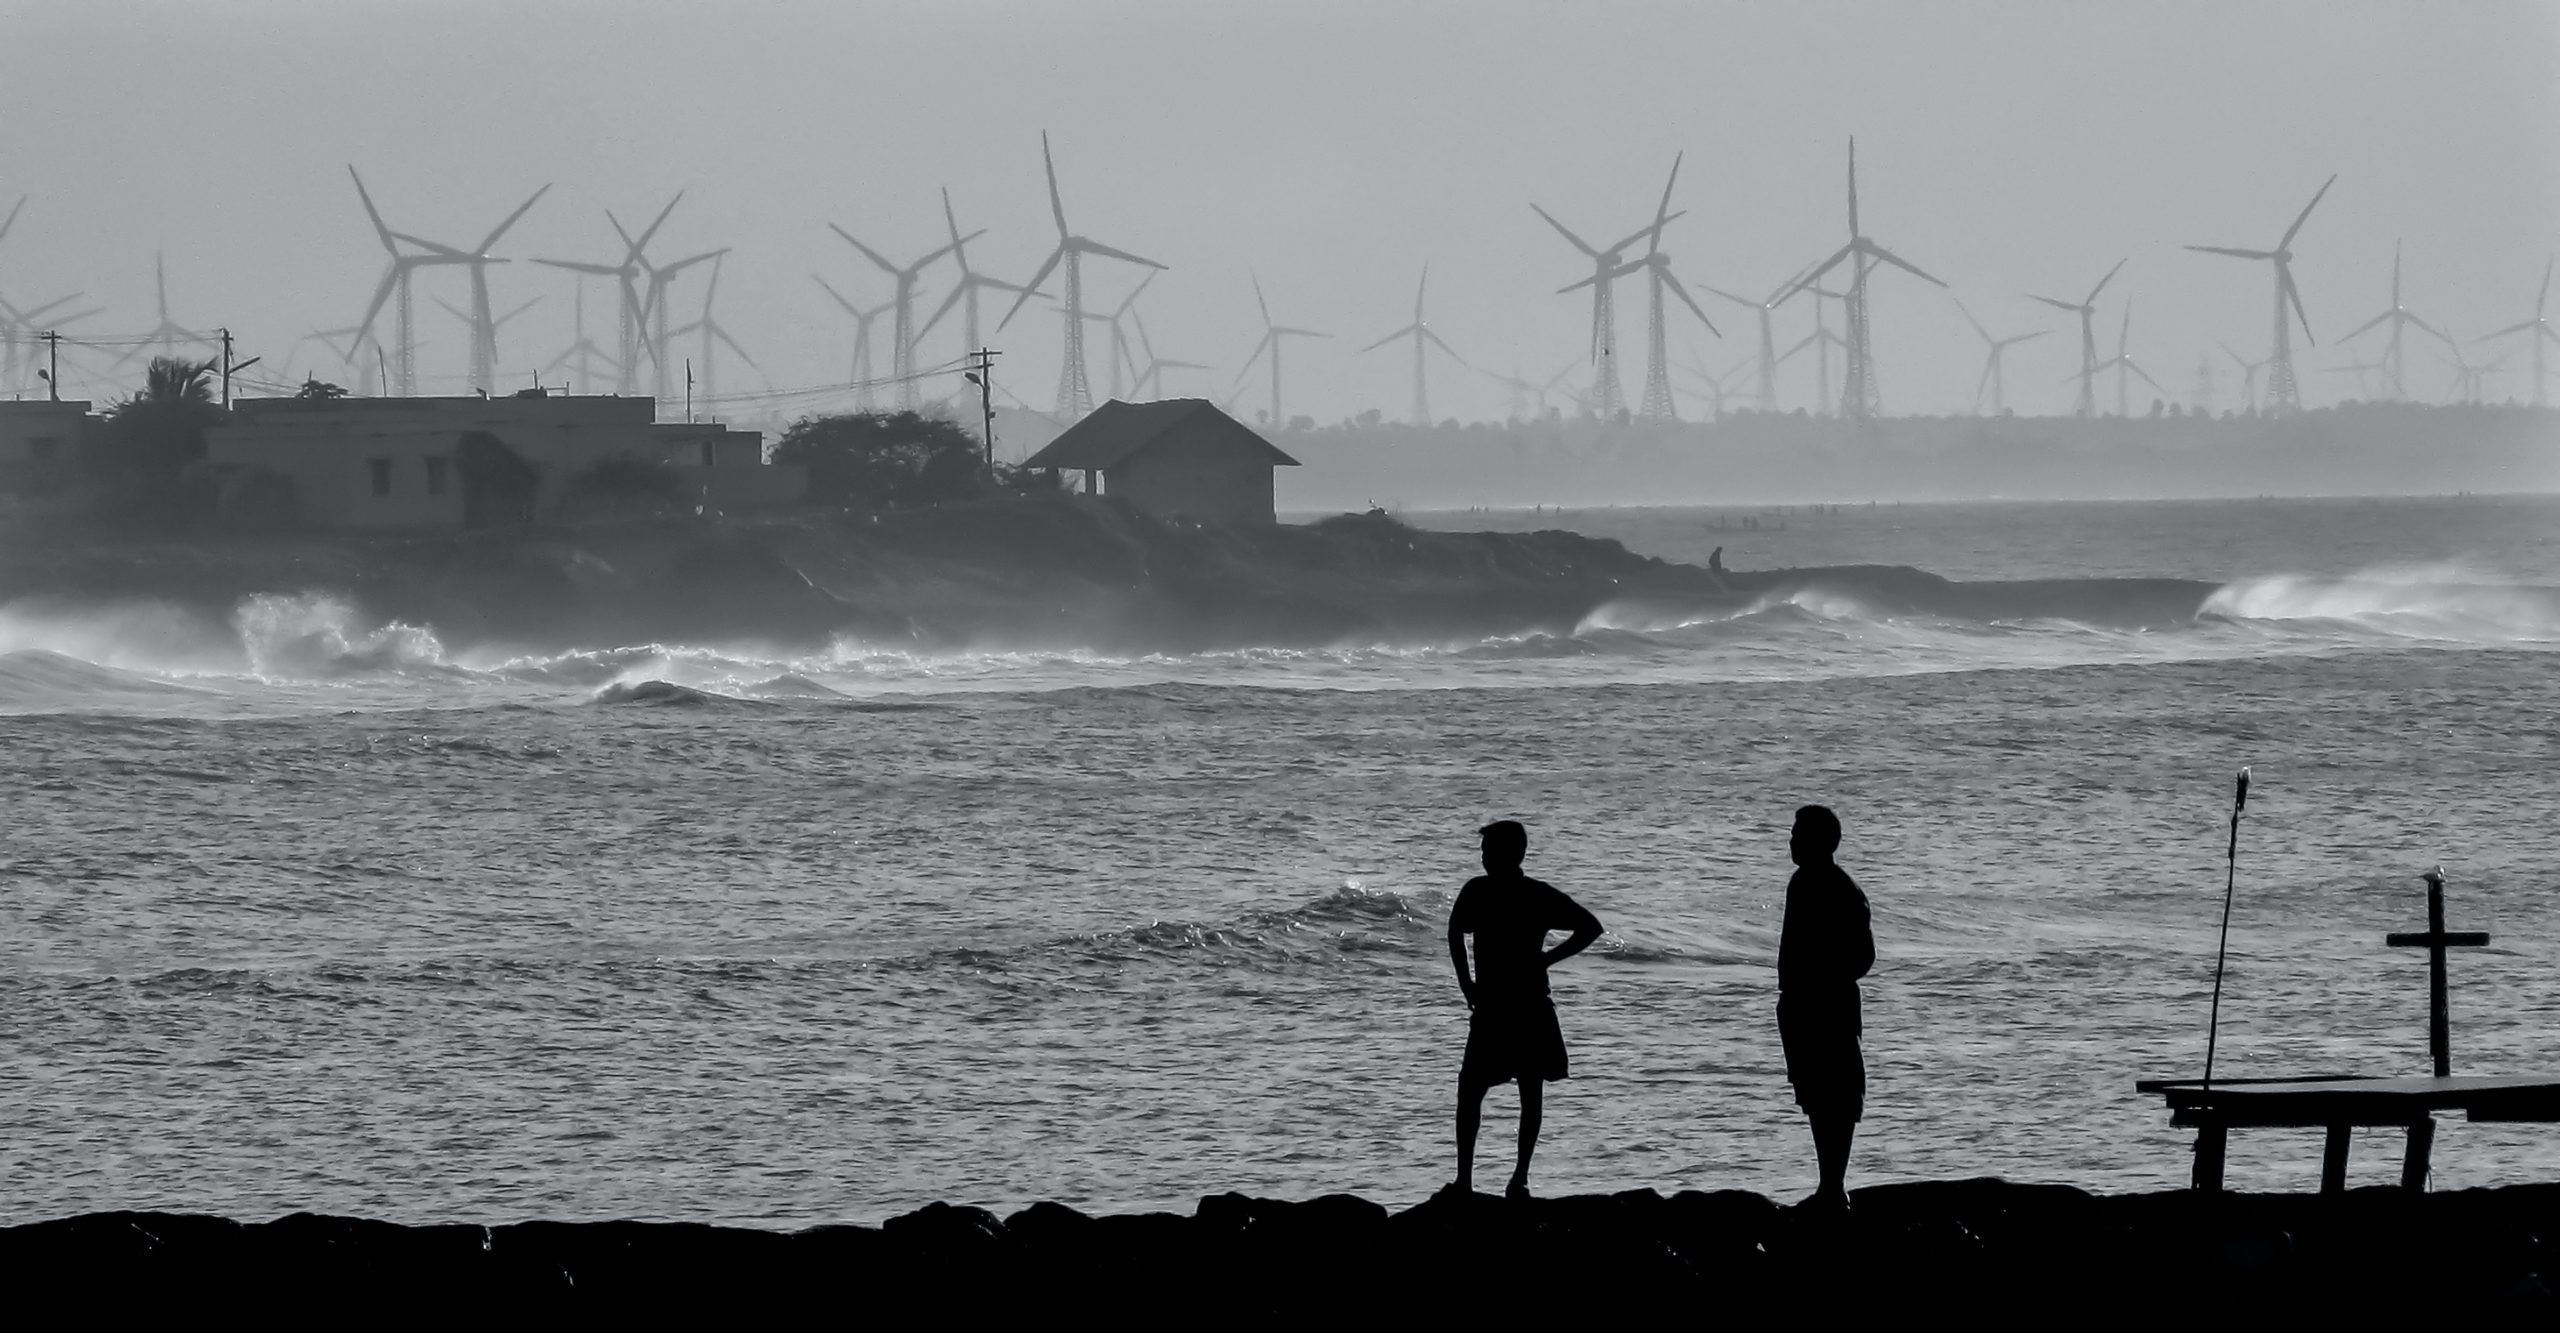 Renewable power has become a key pillar of India's energy policy. Photo by Sunny Tank/Unsplash.